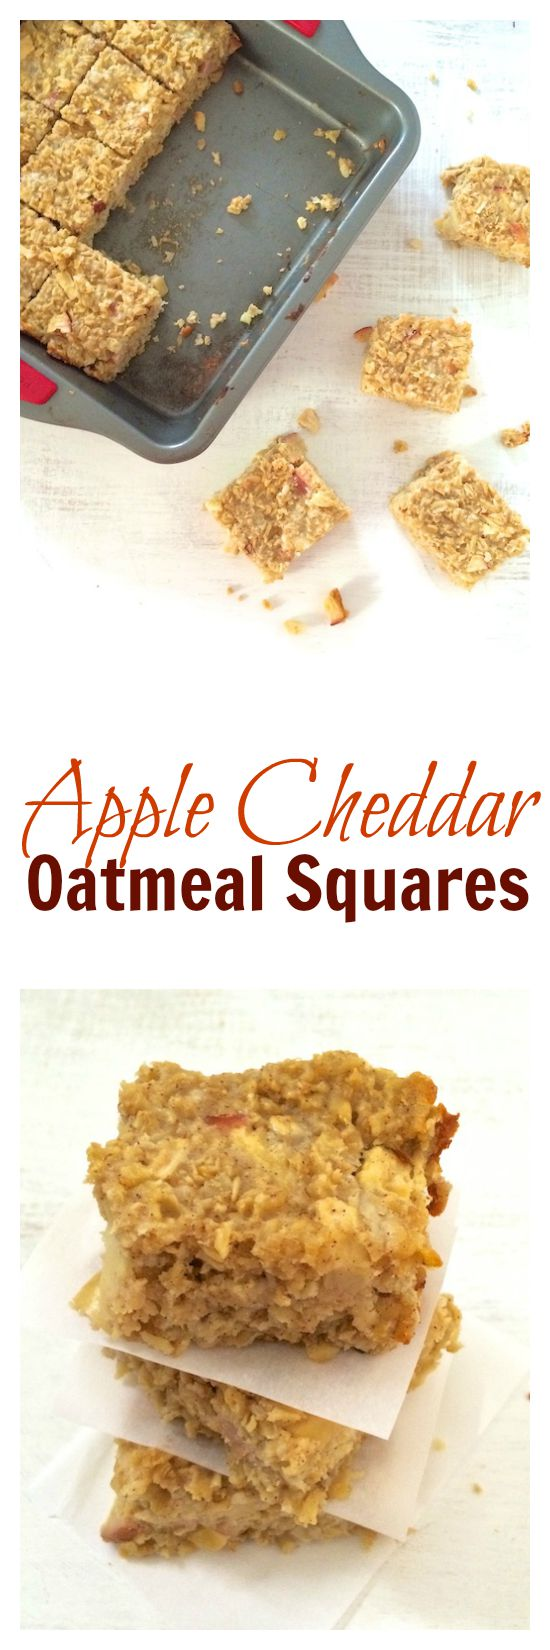 Apple Cheddar Oatmeal Squares - easy to make and perfect for a quick breakfast or snack. @tspbasil